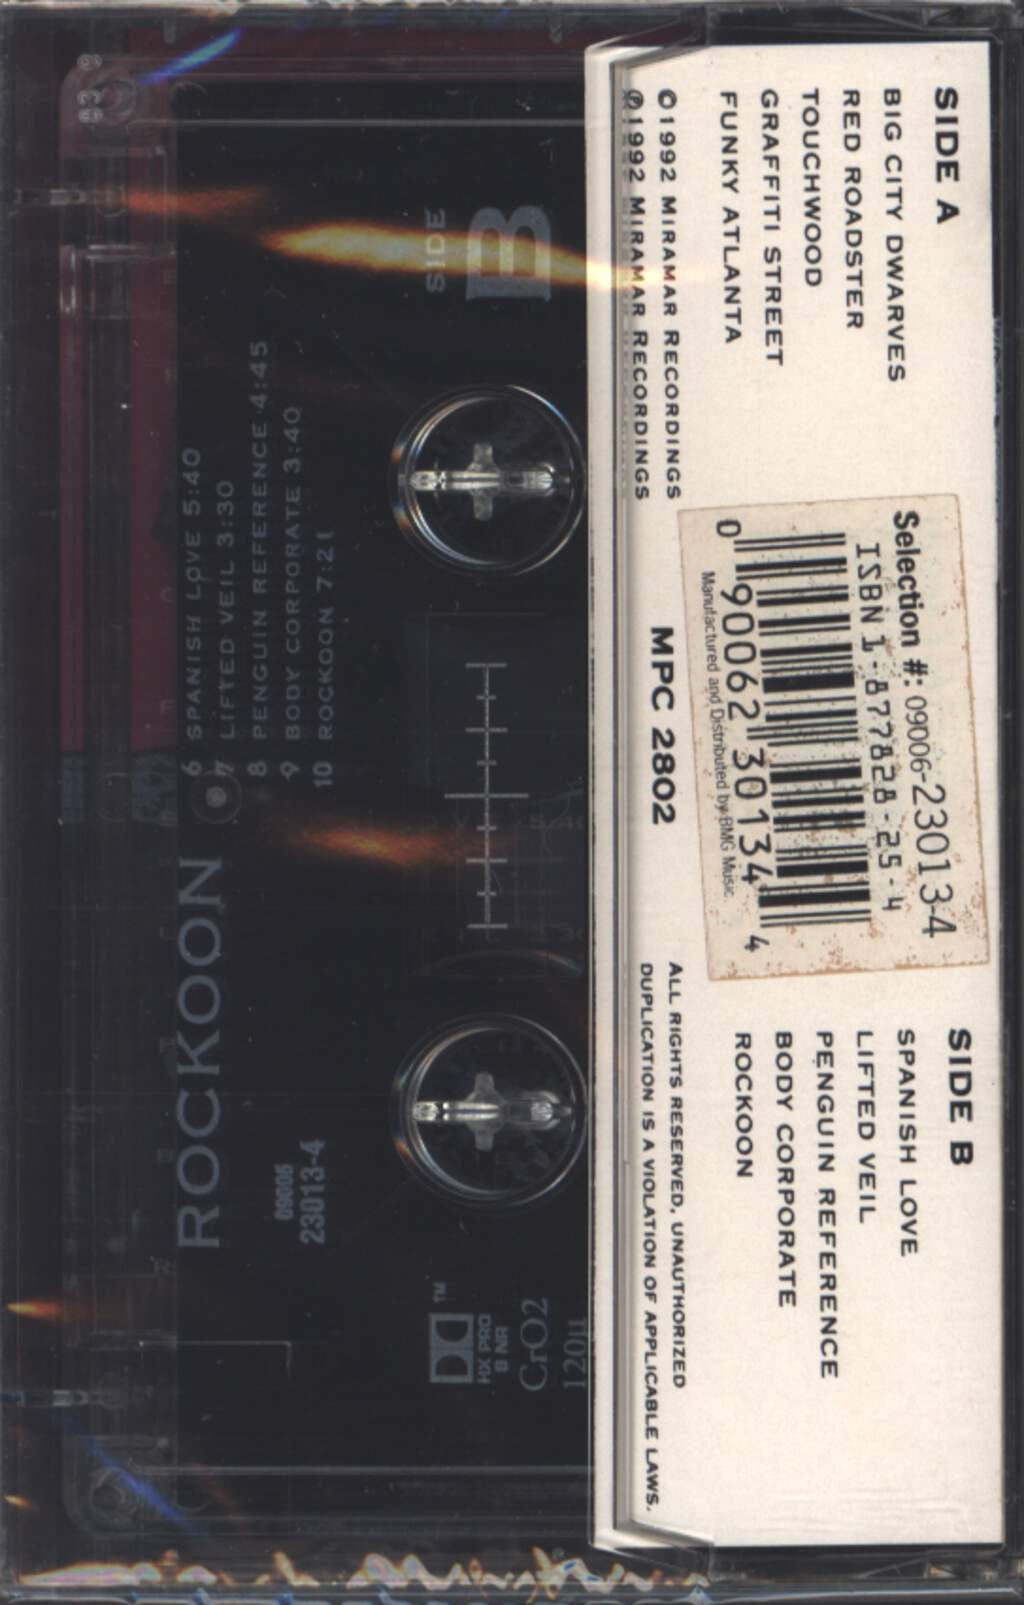 Tangerine Dream: Rockoon, Tape